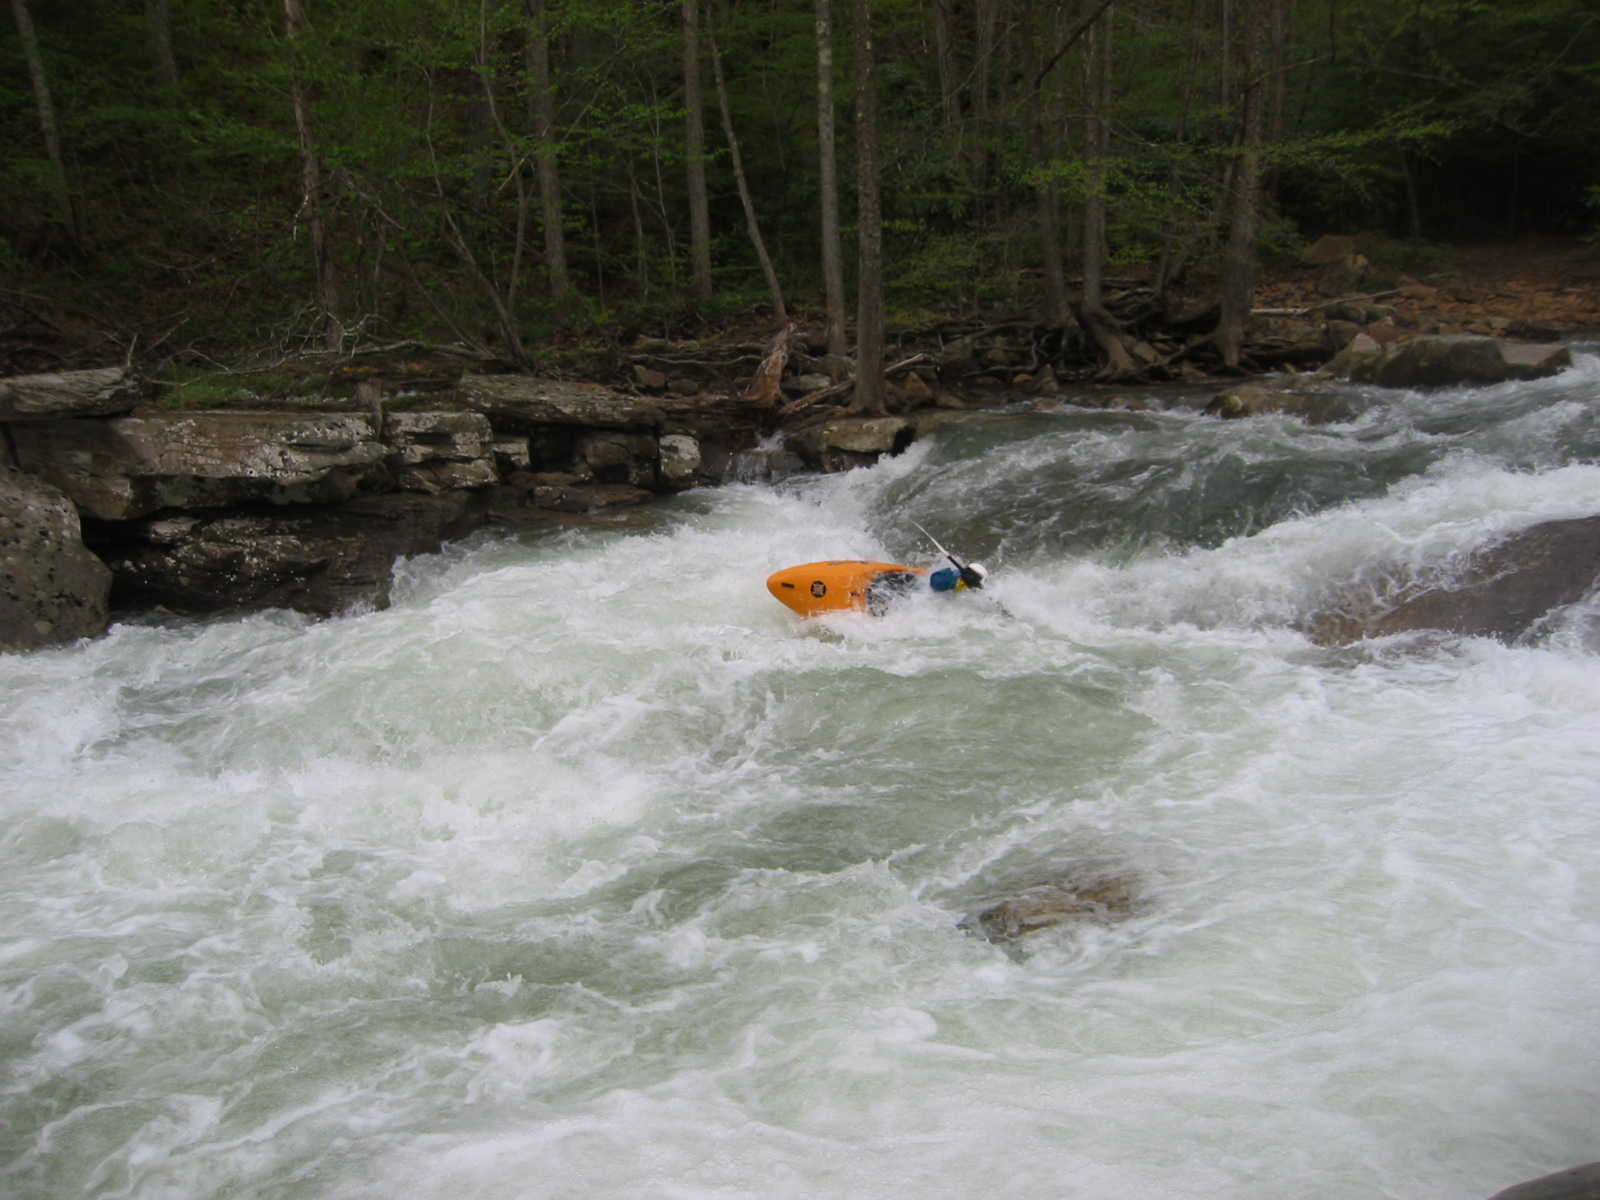 Keith Merkel deep bracing in Bridge Rapid (Photo by Scott Gravatt - 4/27/04)